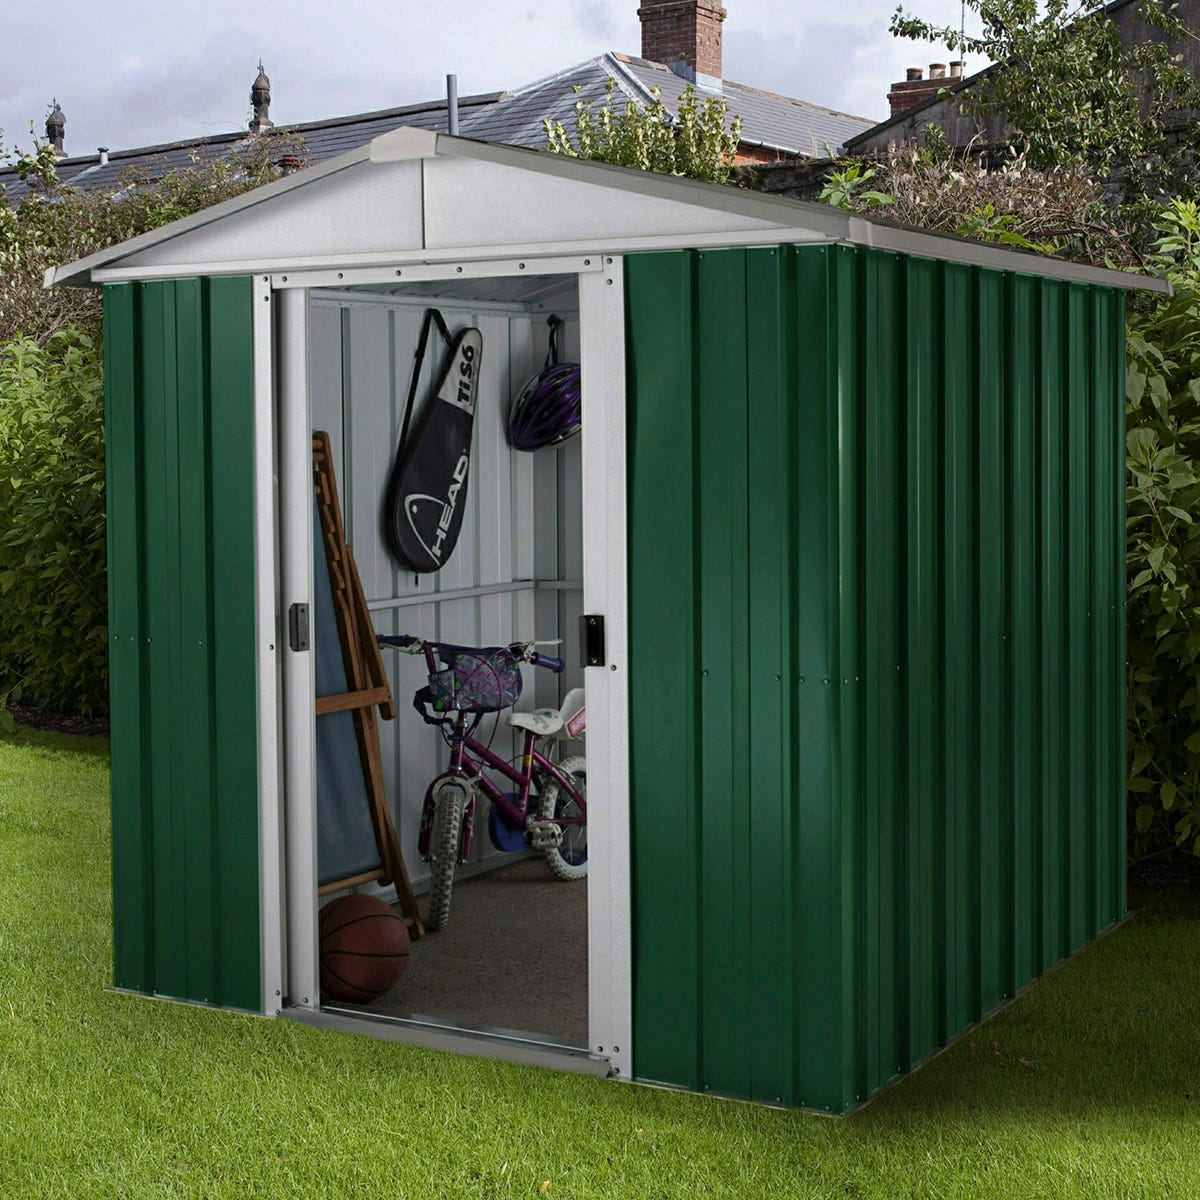 Yardmaster Emerald Metal Apex Shed 6 x 6ft with Floor Support Frame